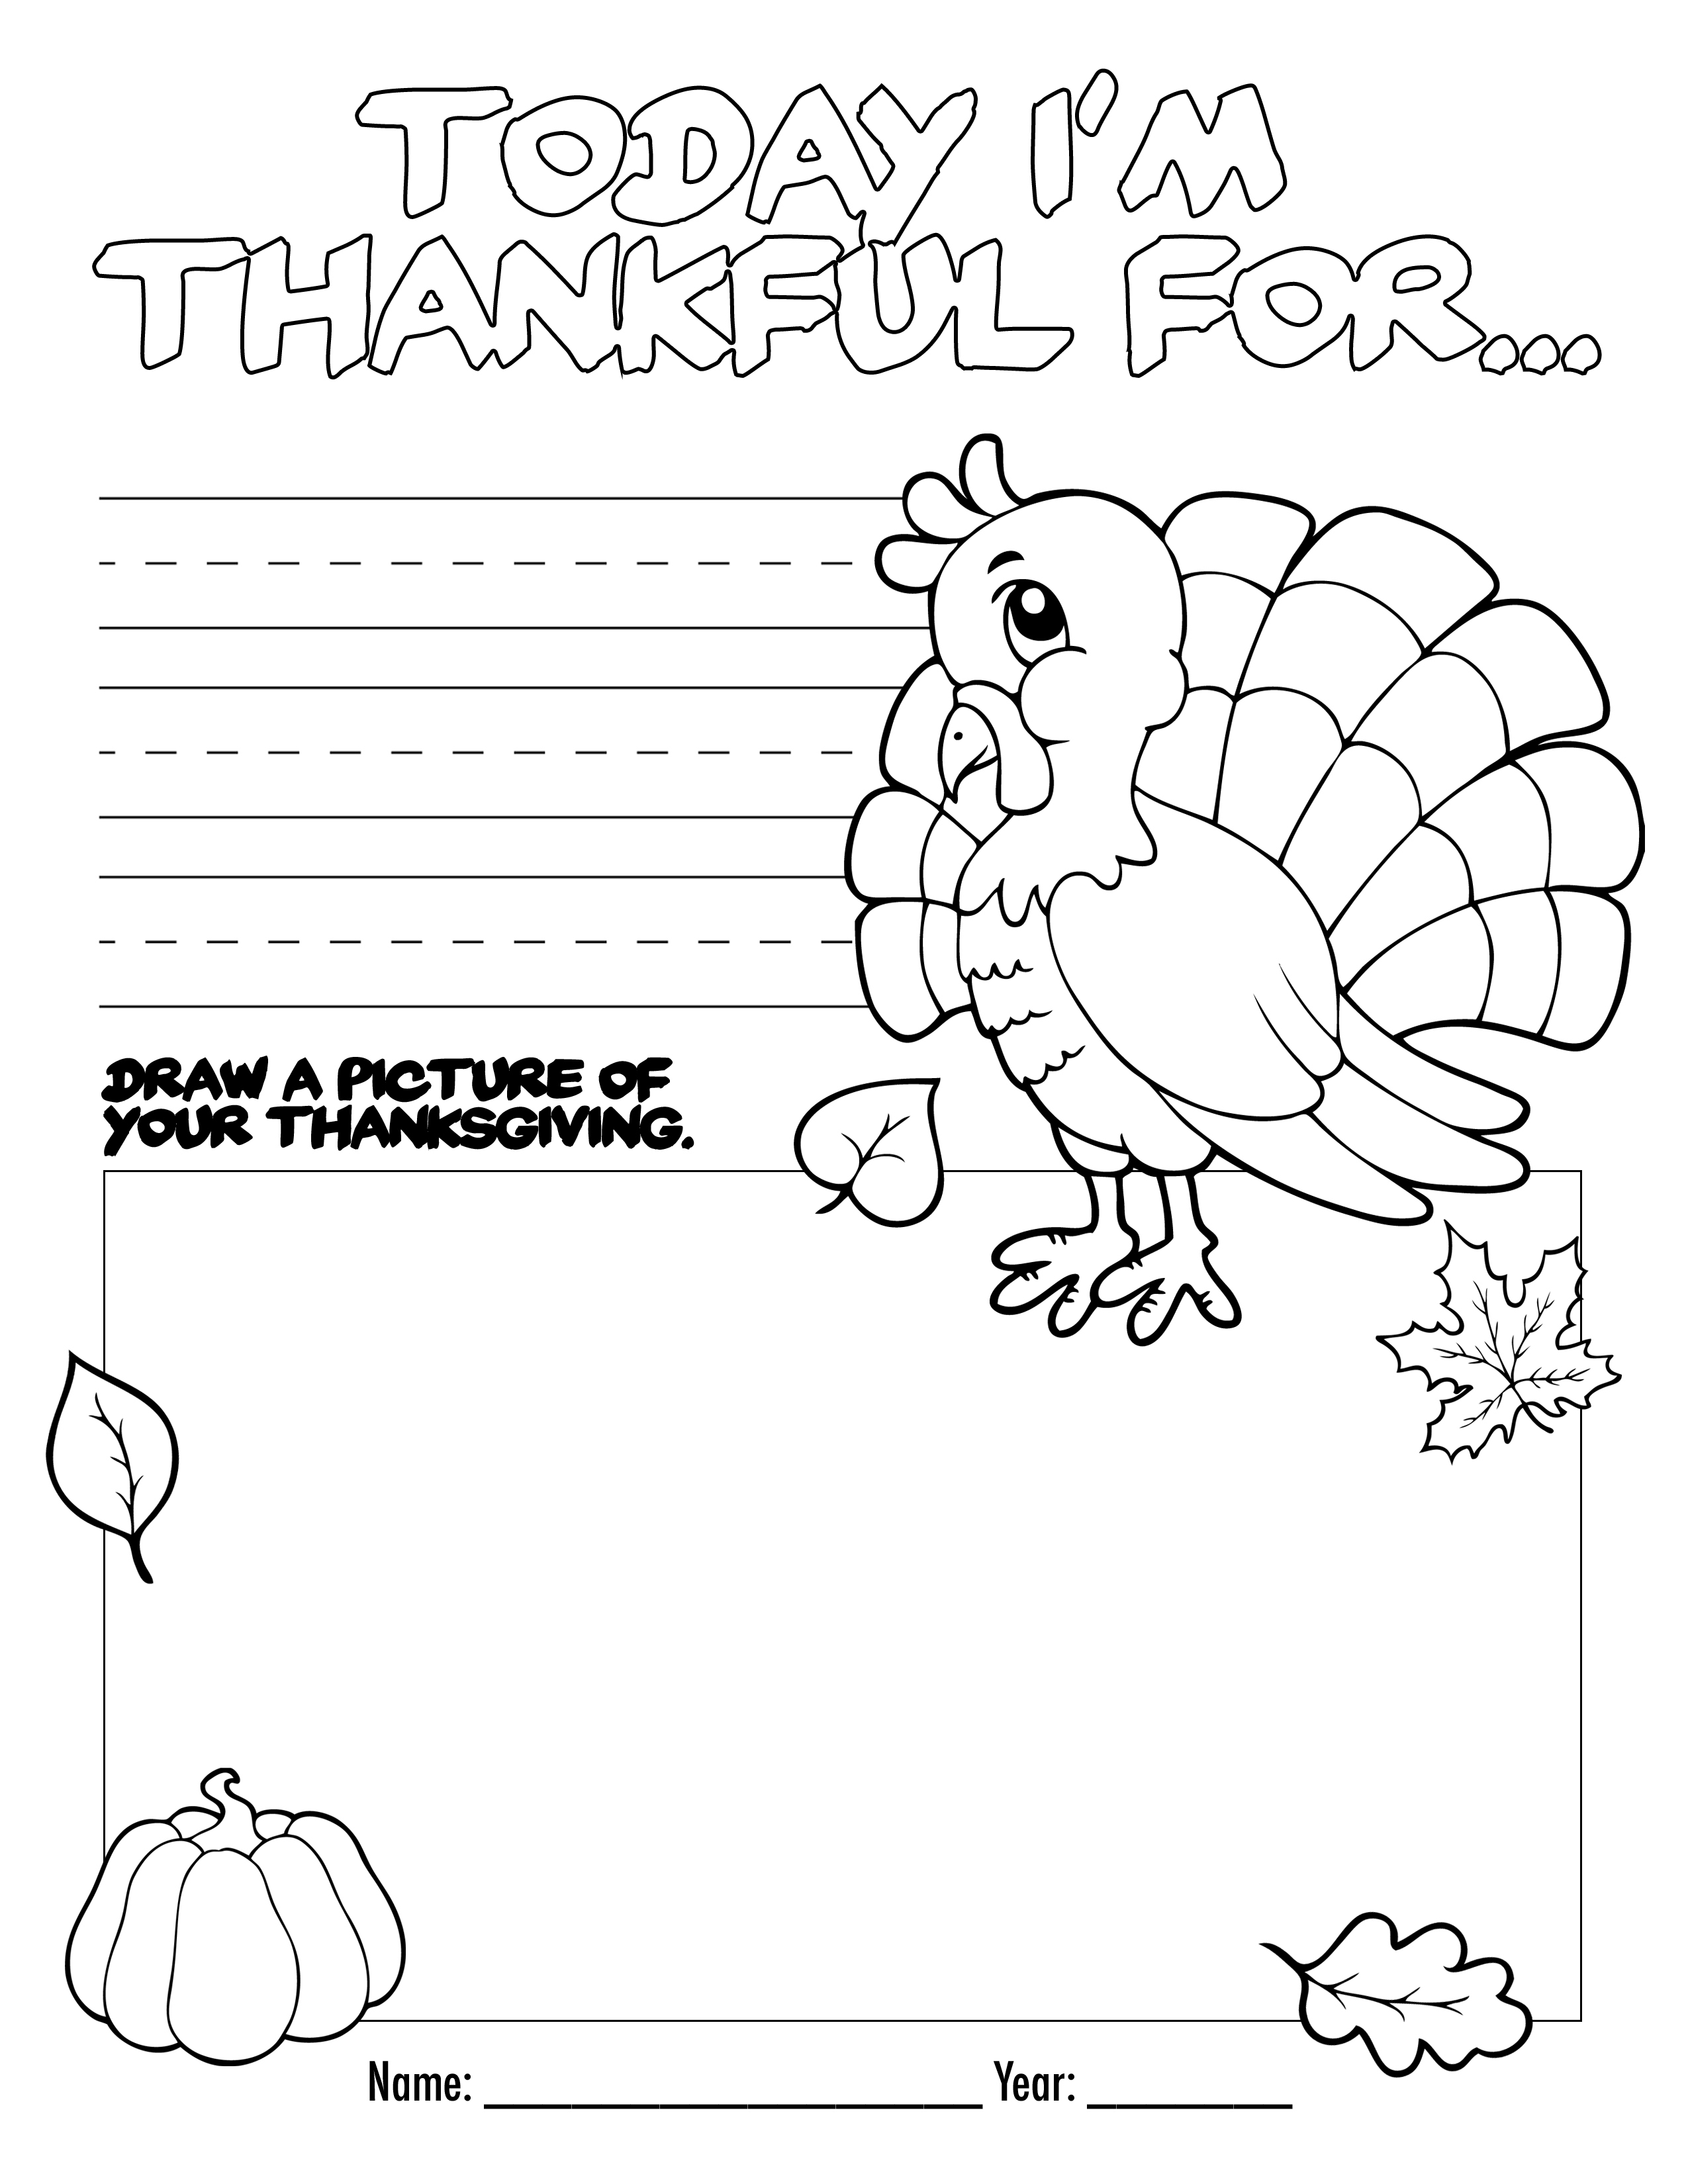 Thanksgiving Coloring Book Free Printable For The Kids! - Free Printable Thanksgiving Activities